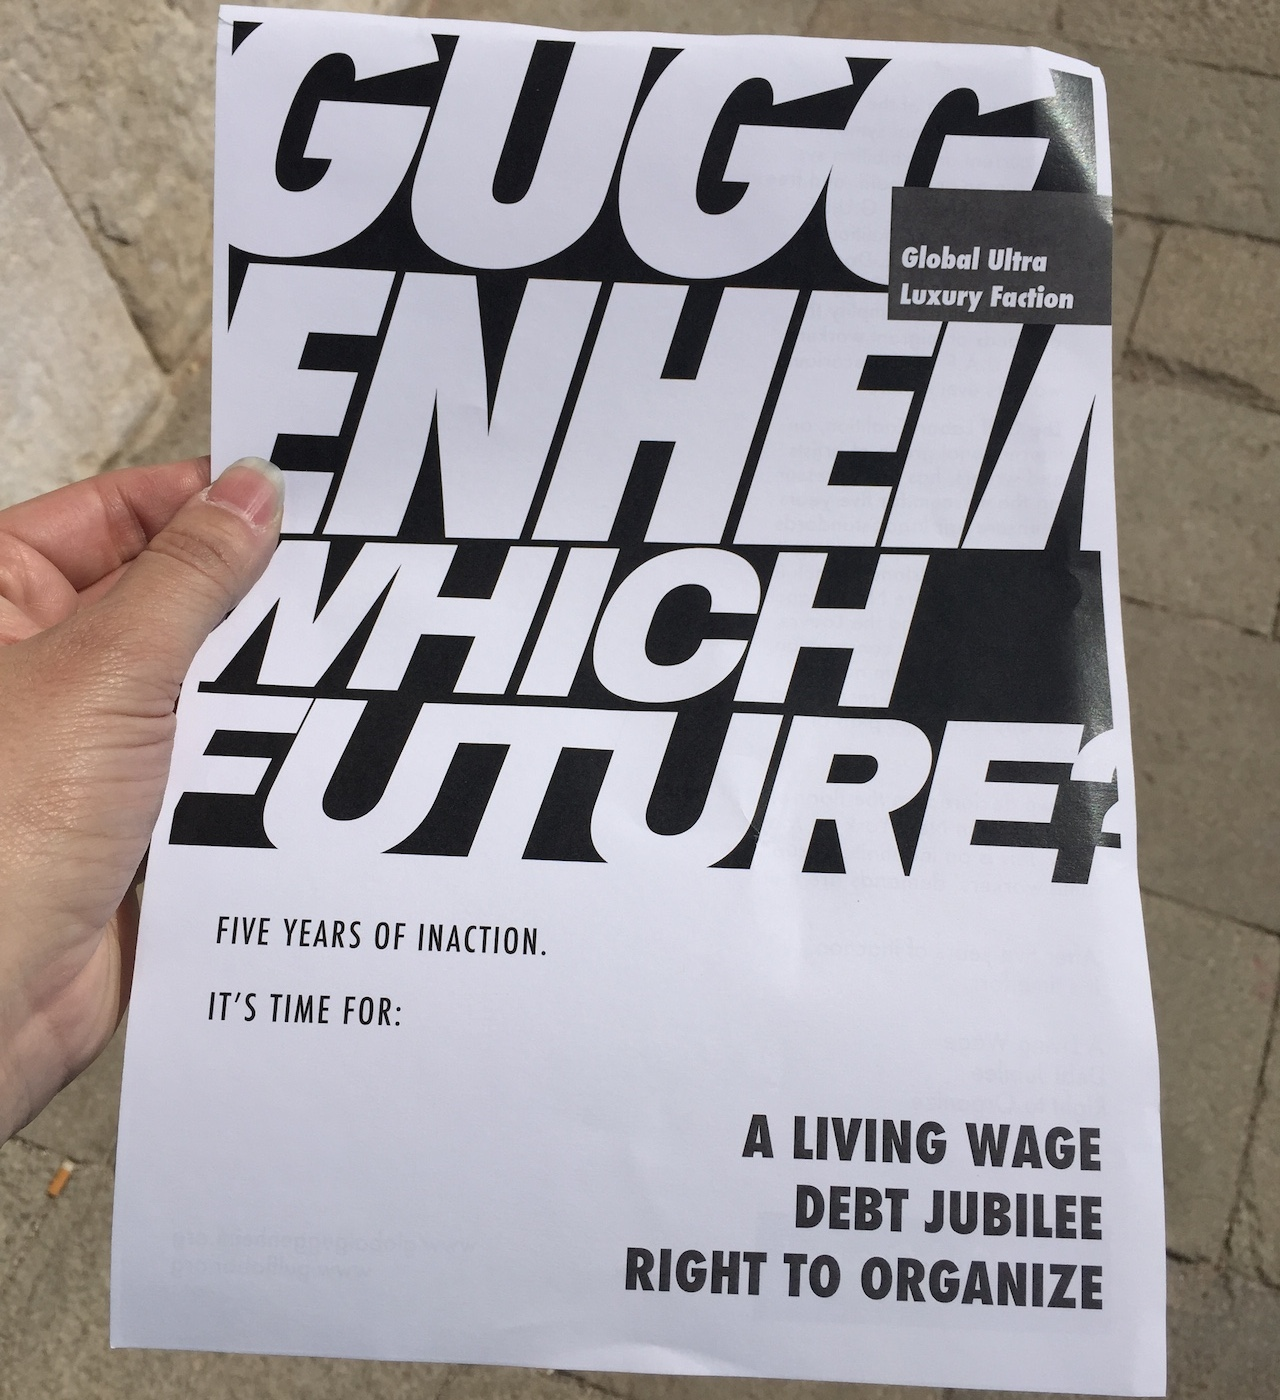 The flyer being distributed at today's protest